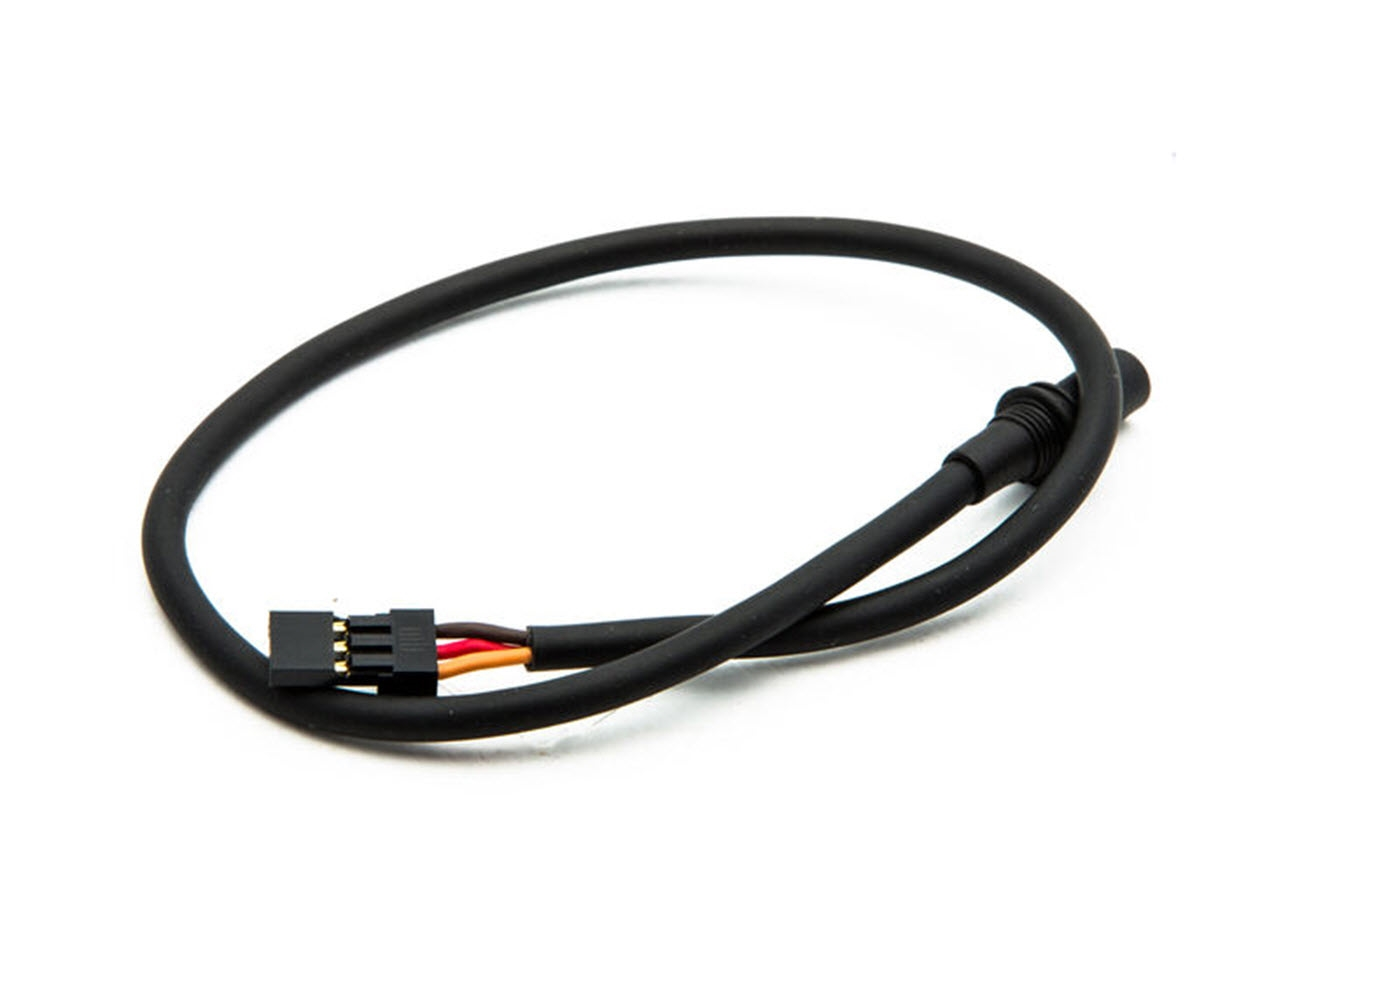 SPMSP3027 Spektrum Locking Insulated Cable 12""